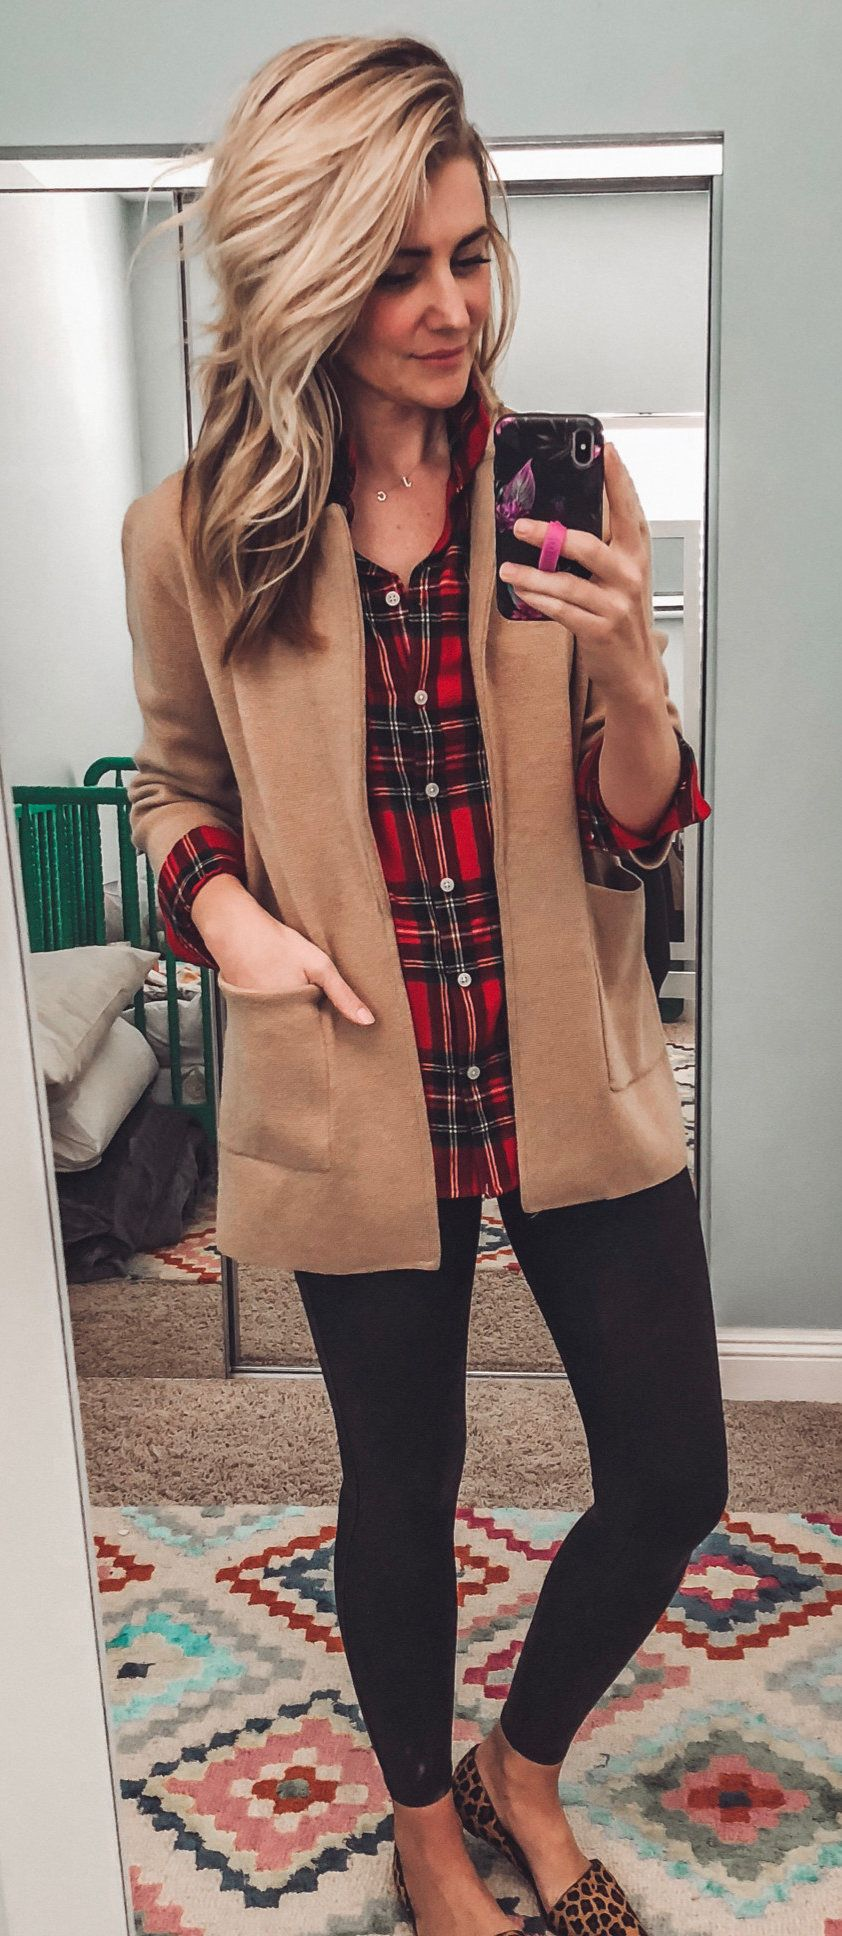 red-and-black plaid button-up shirt and brown coat